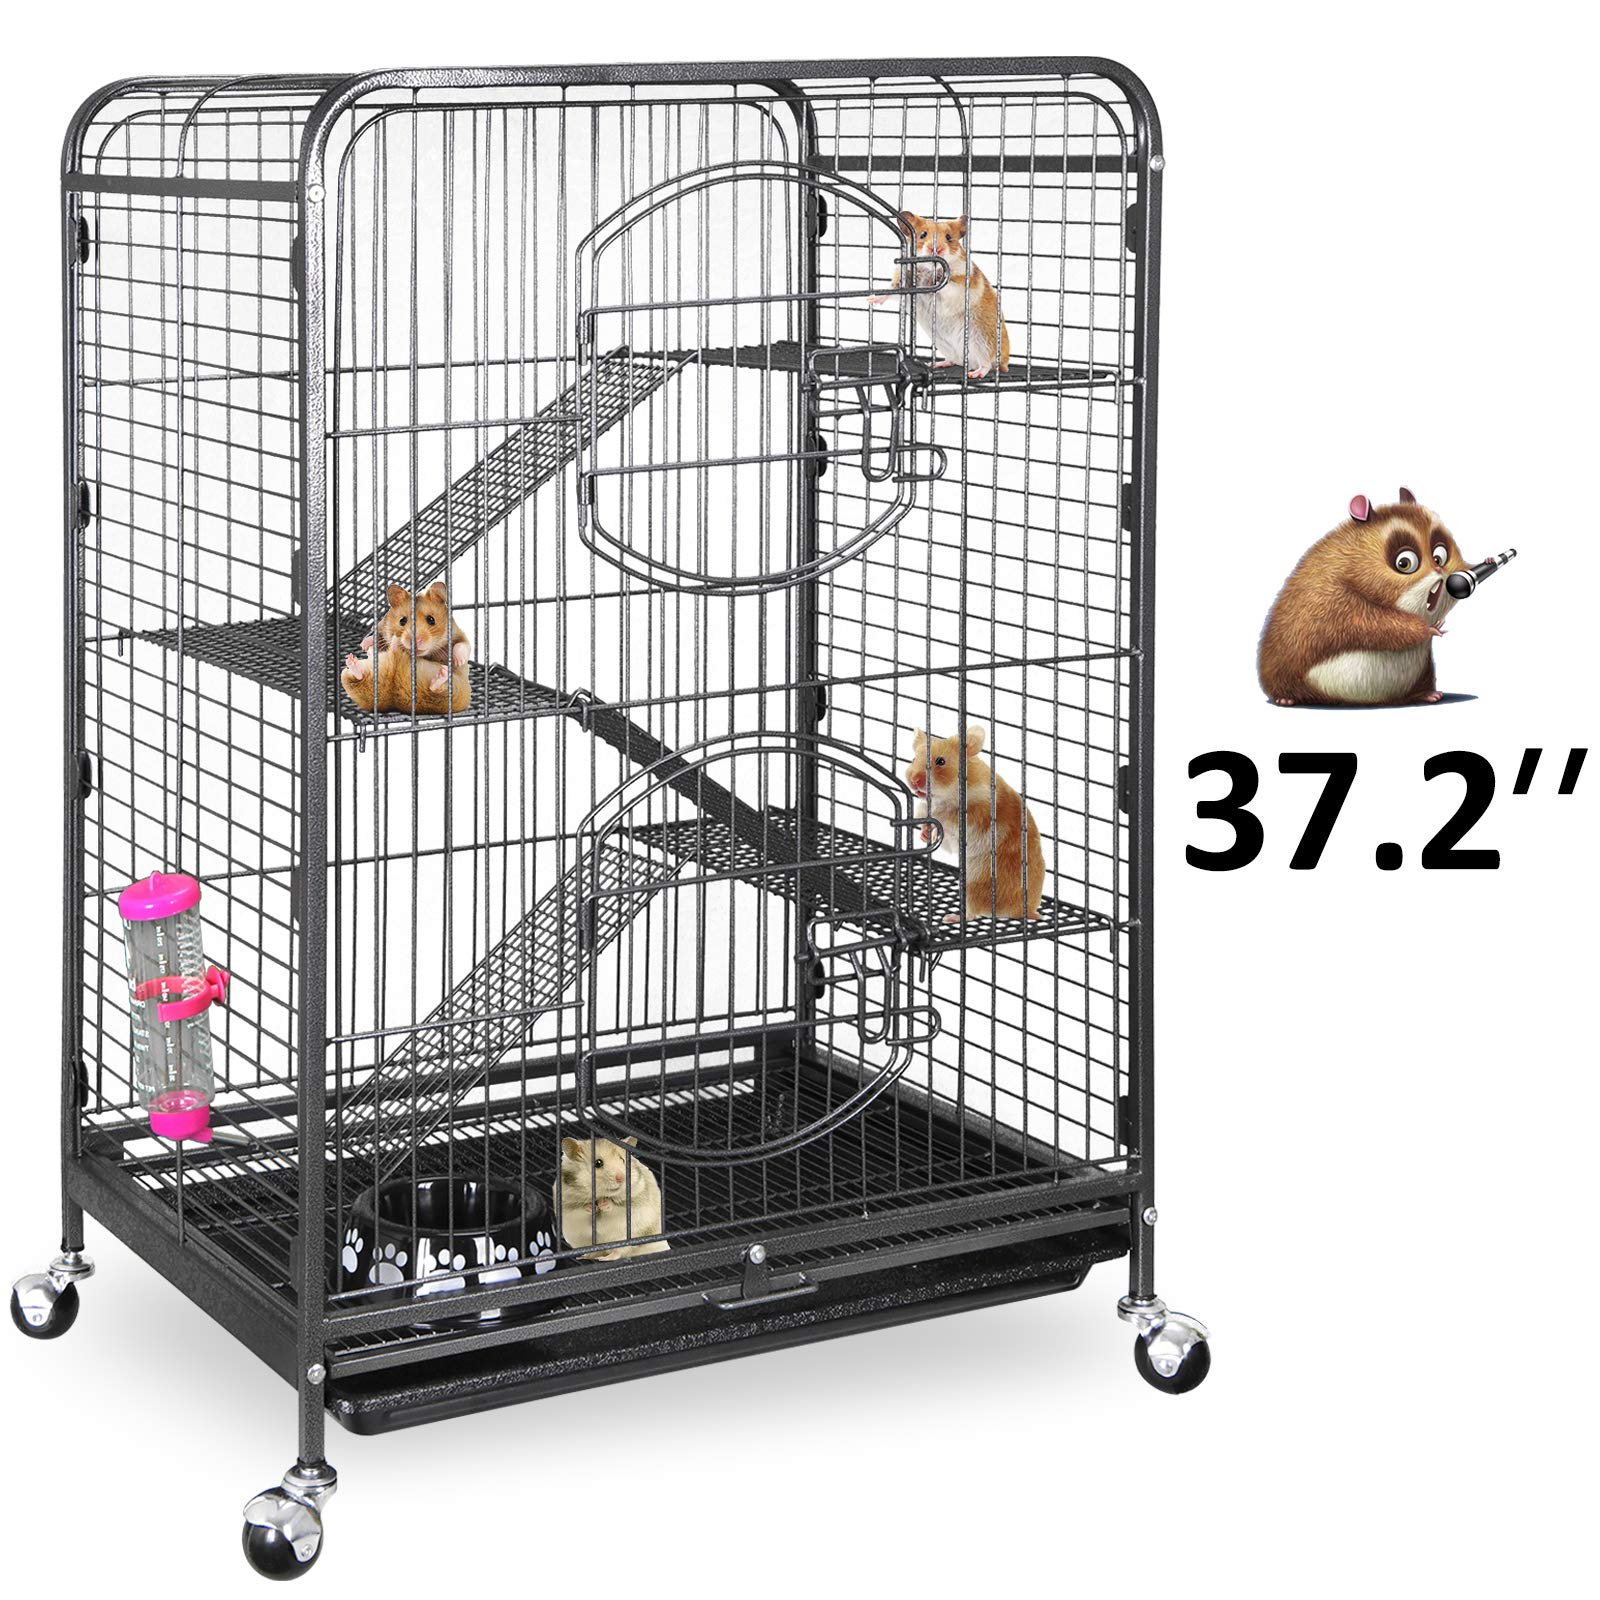 SUPER DEAL 37.2'' Ferret Cage Chinchilla Sugar Glider Guinea Pig Small Animal Cage - 4 Tiers - 3 Ladders - 2 Front Doors - Food Bowl - Water Bottle - Slide Out Trays - Swivel Casters (2019 Pro) by SUPER DEAL